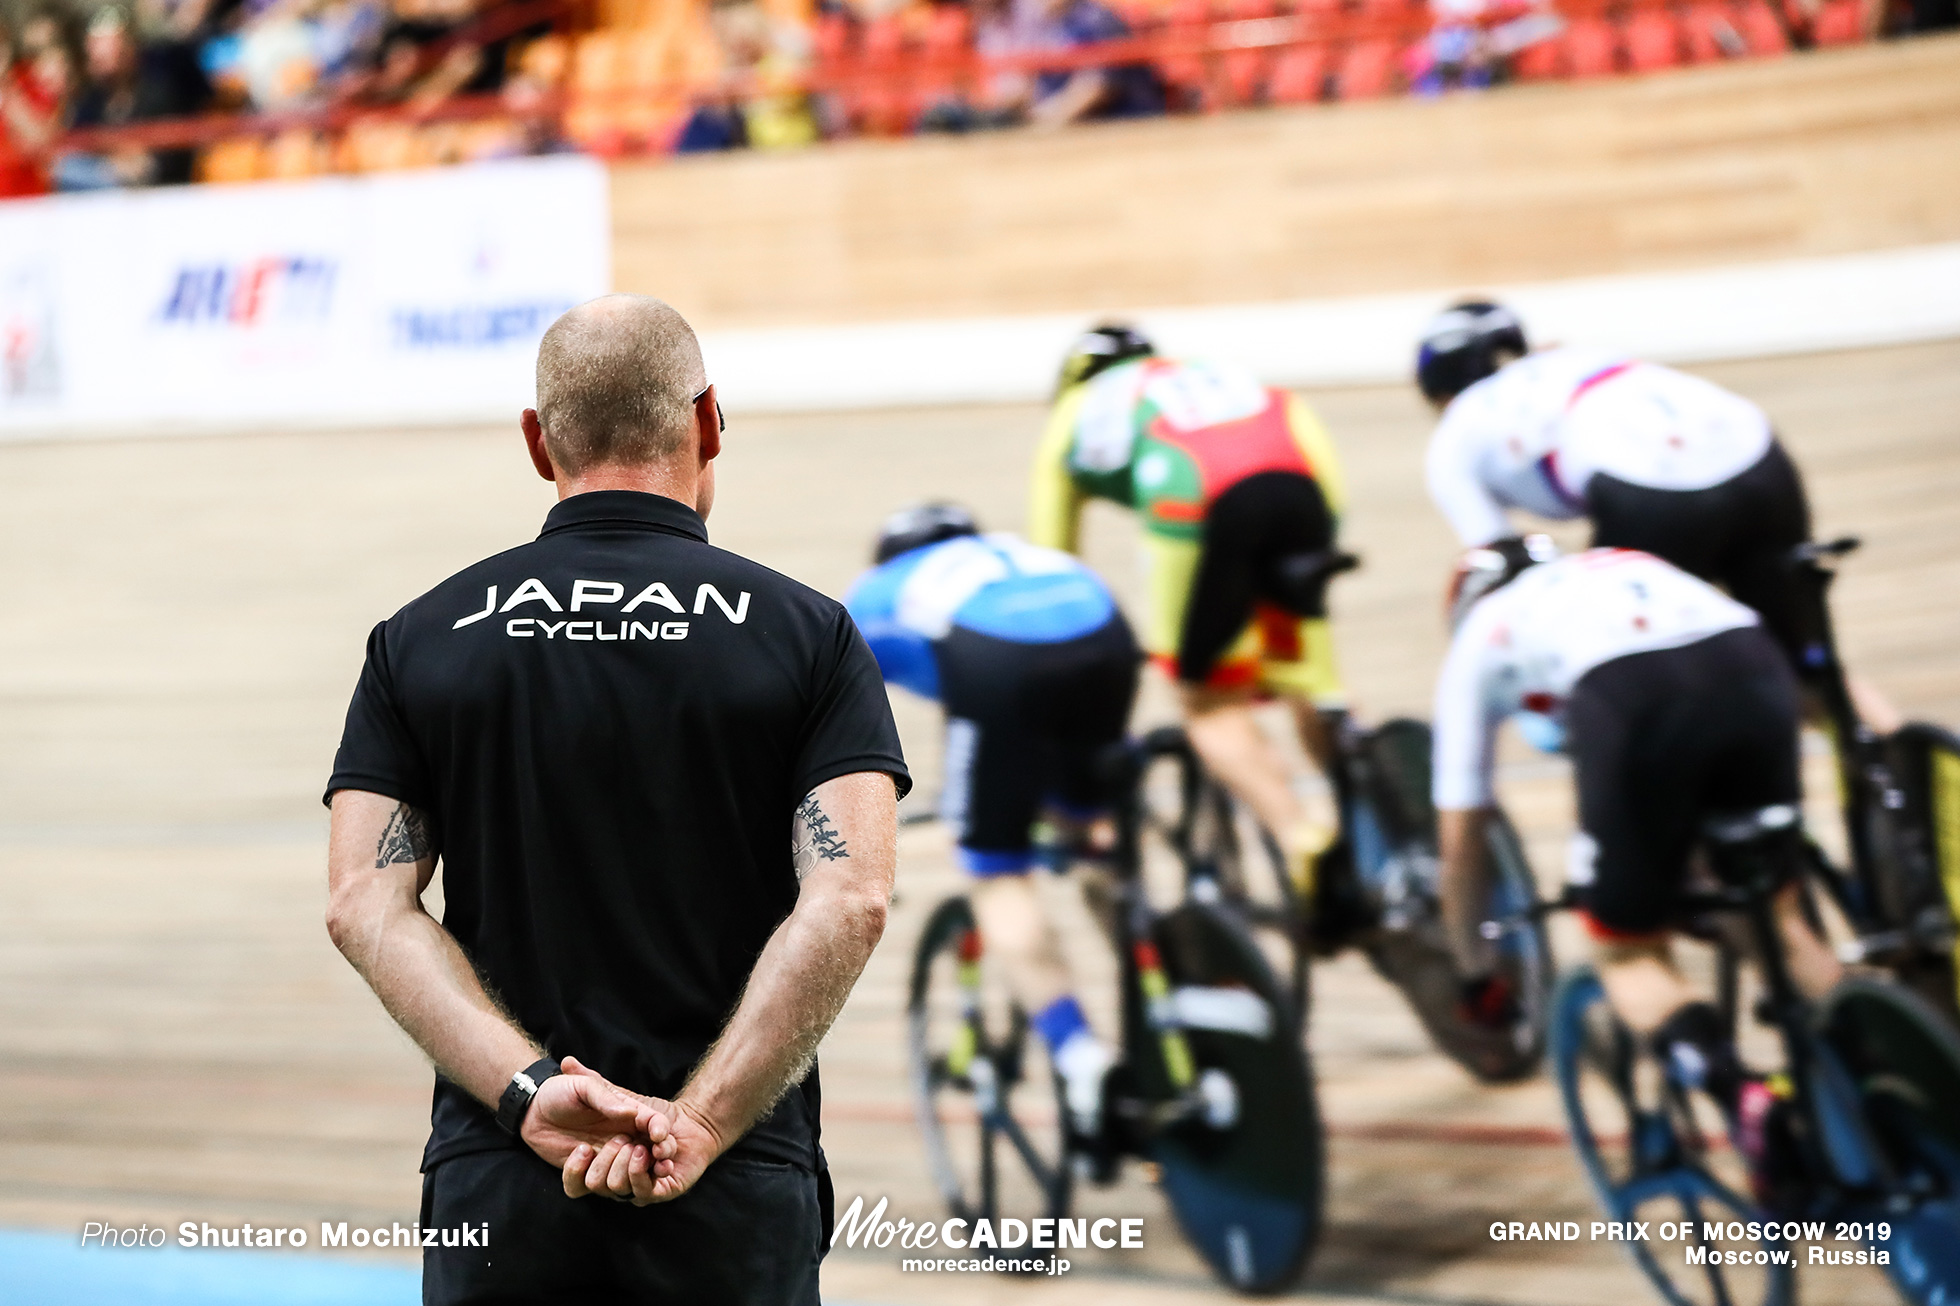 1st Round / Women's Keirin / GRAND PRIX OF MOSCOW 2019